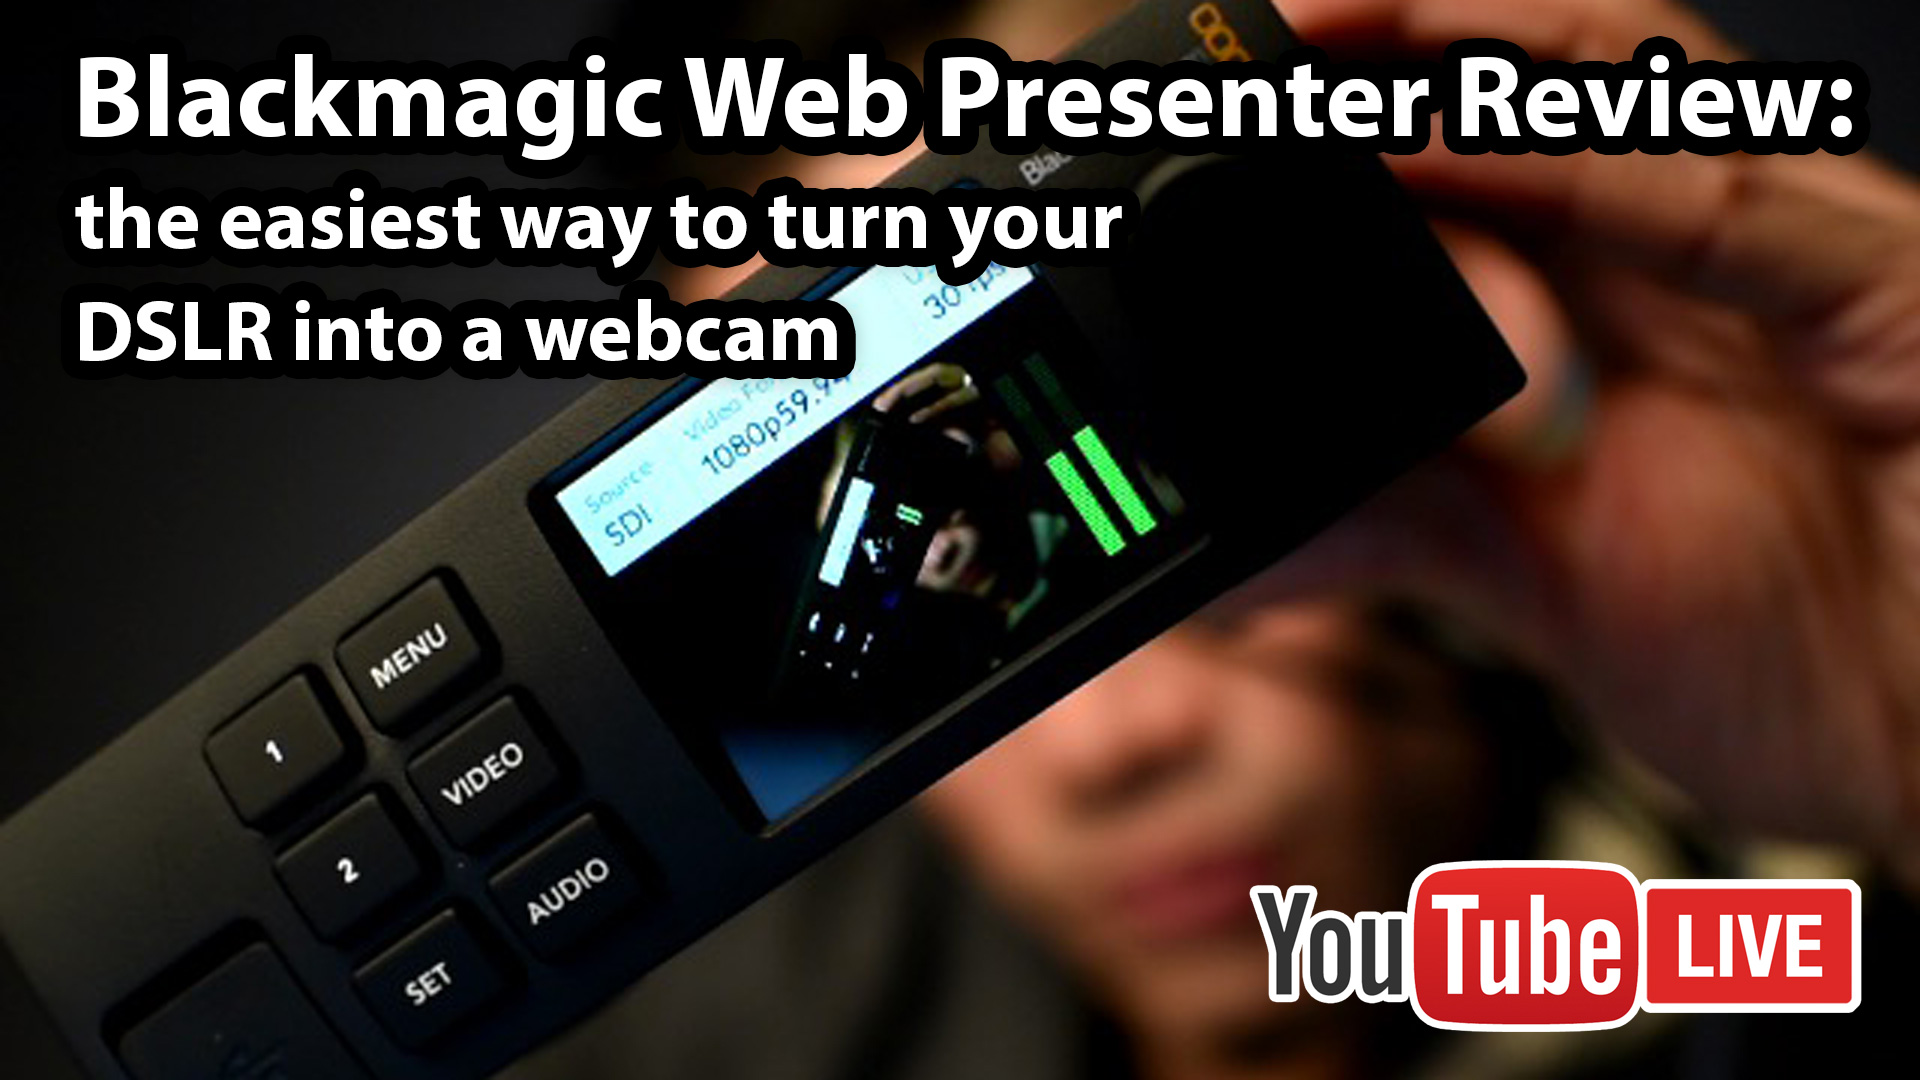 Blackmagic Web Presenter Review The Easiest Way To Use Your Camera For Live Streaming Not So Ancient Chinese Secrets